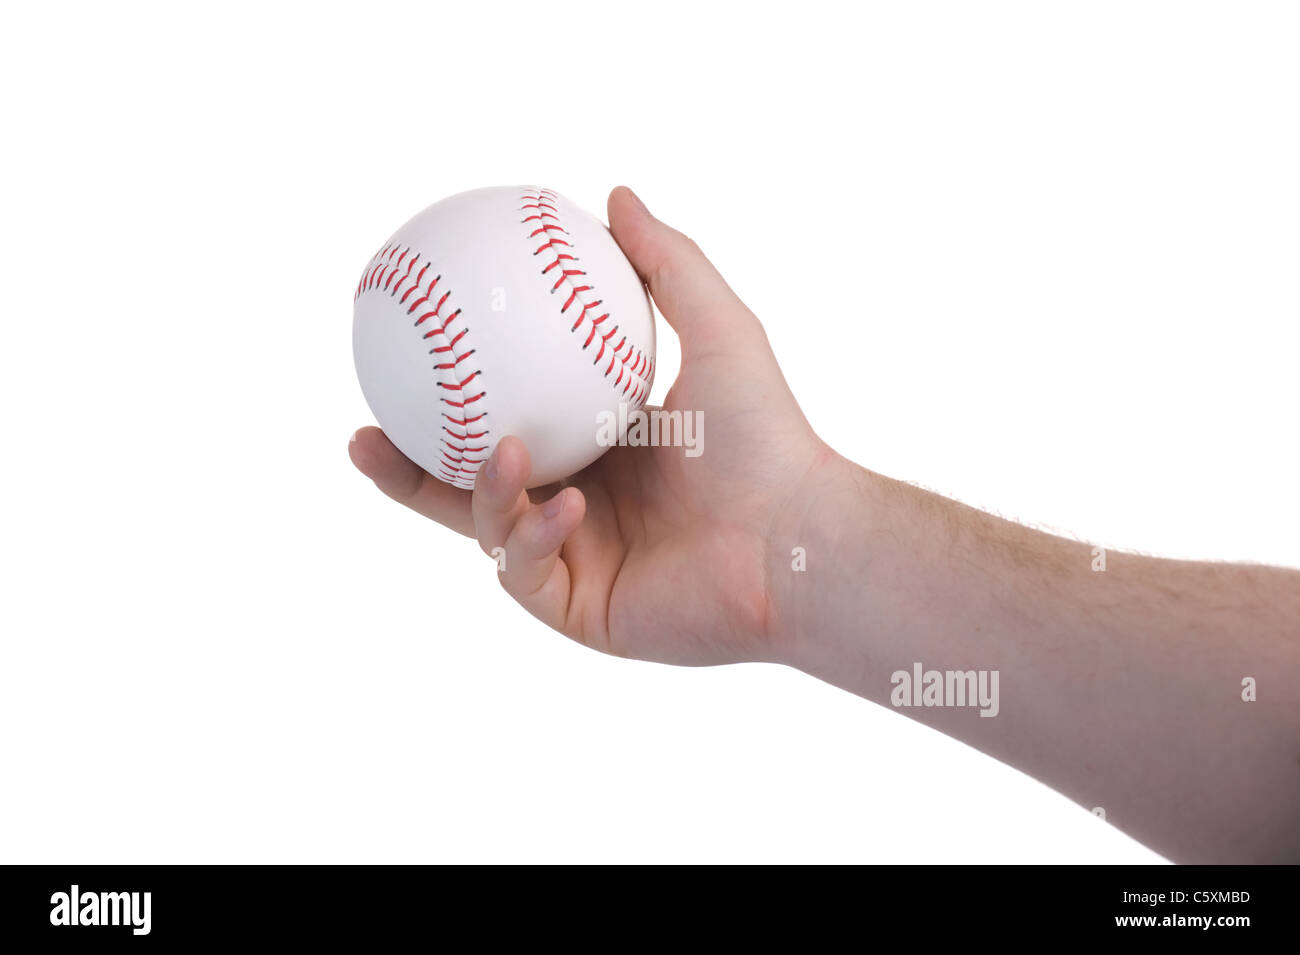 pitcher throwing a baseball during a sports game - Stock Image